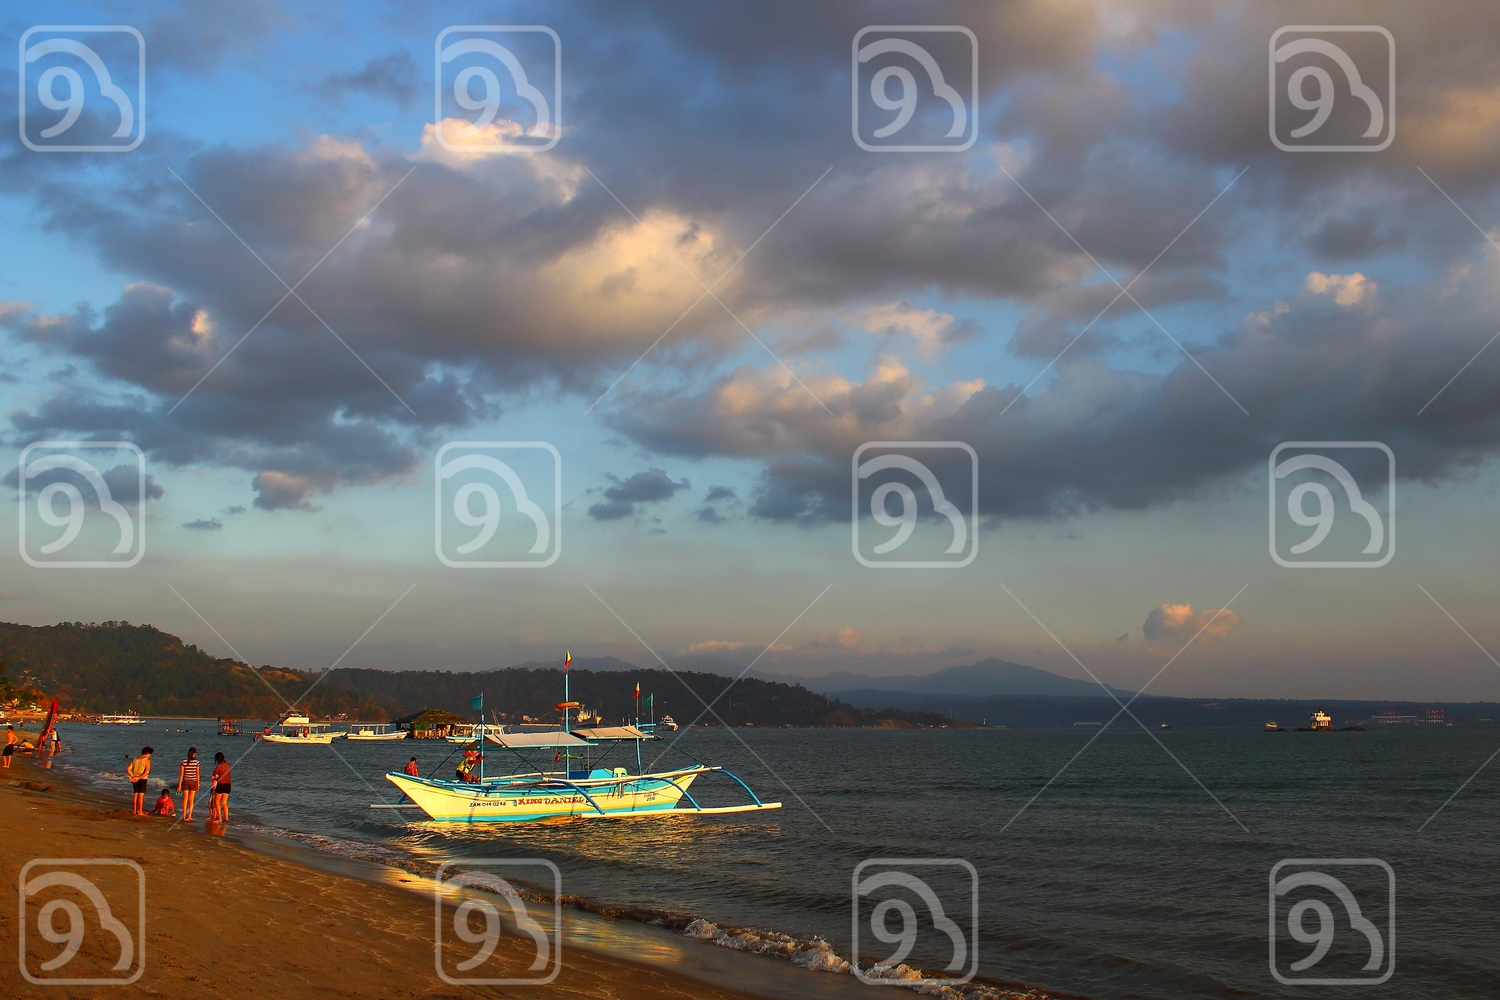 Beach at Subic, Philippines